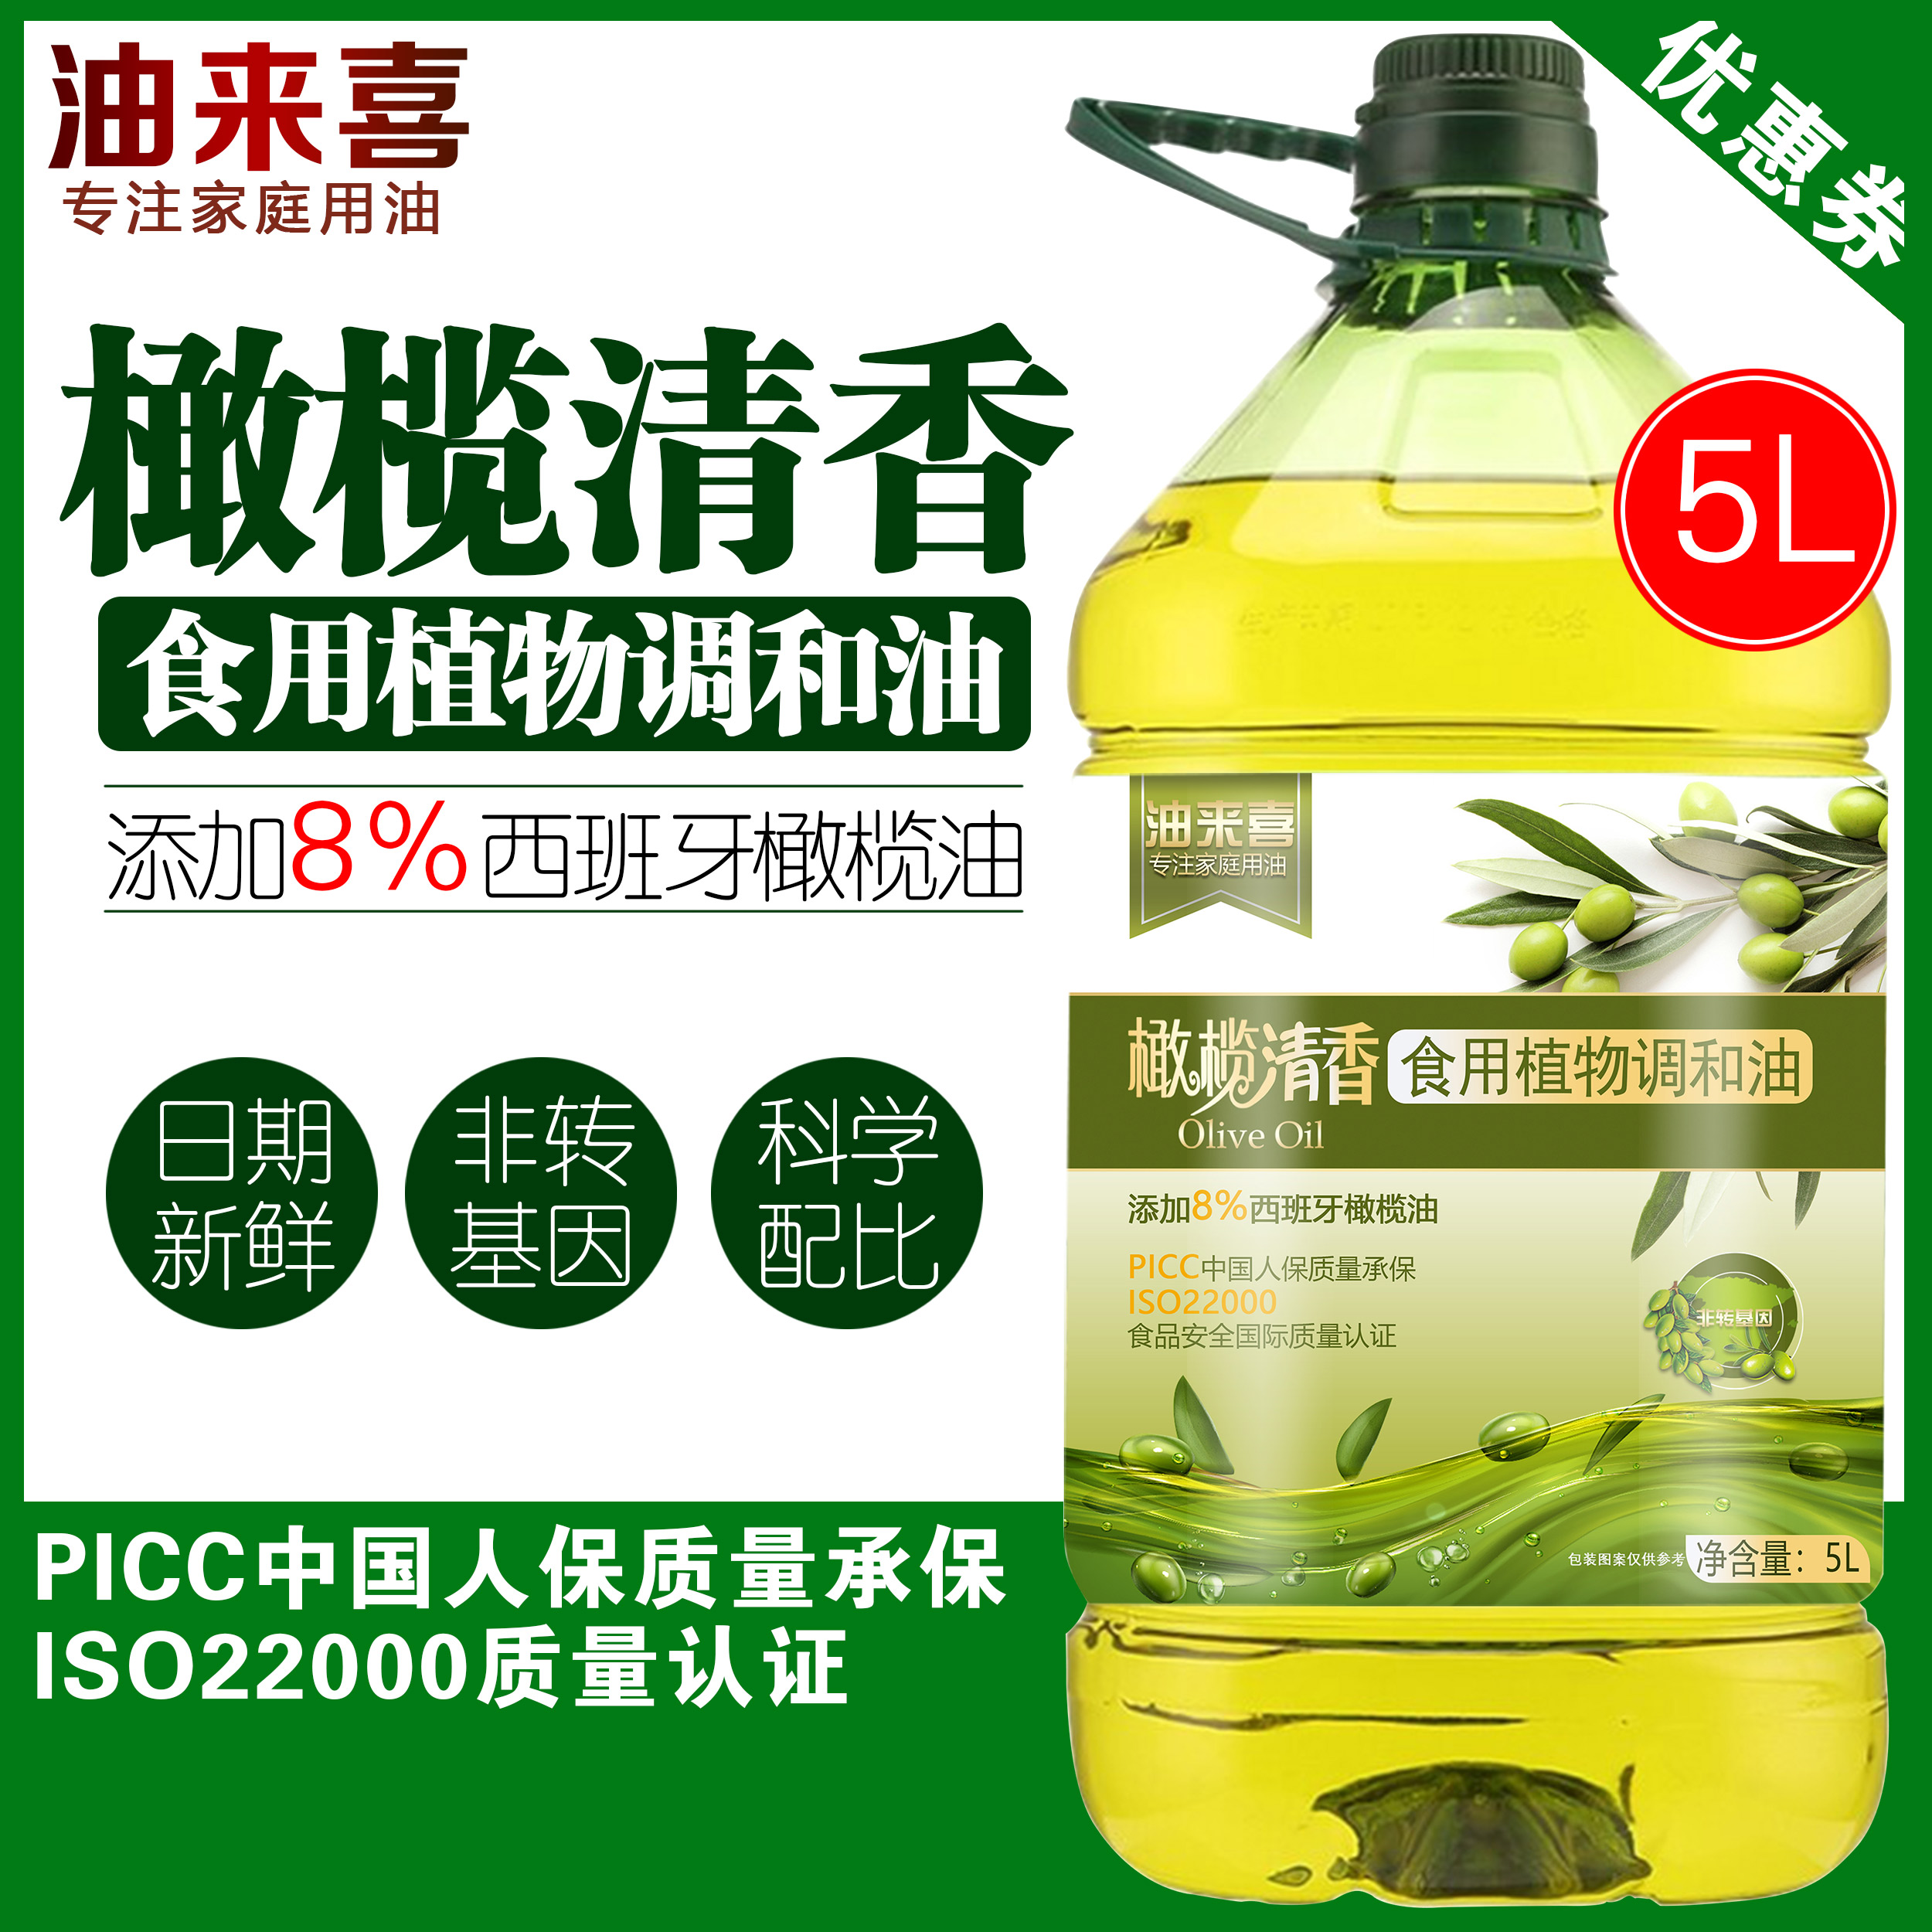 Youlaixi edible oil can be packed into household 8% olive oil blend oil, non genetically modified vegetable oil, stir fried vegetable oil, big barrel, 5L